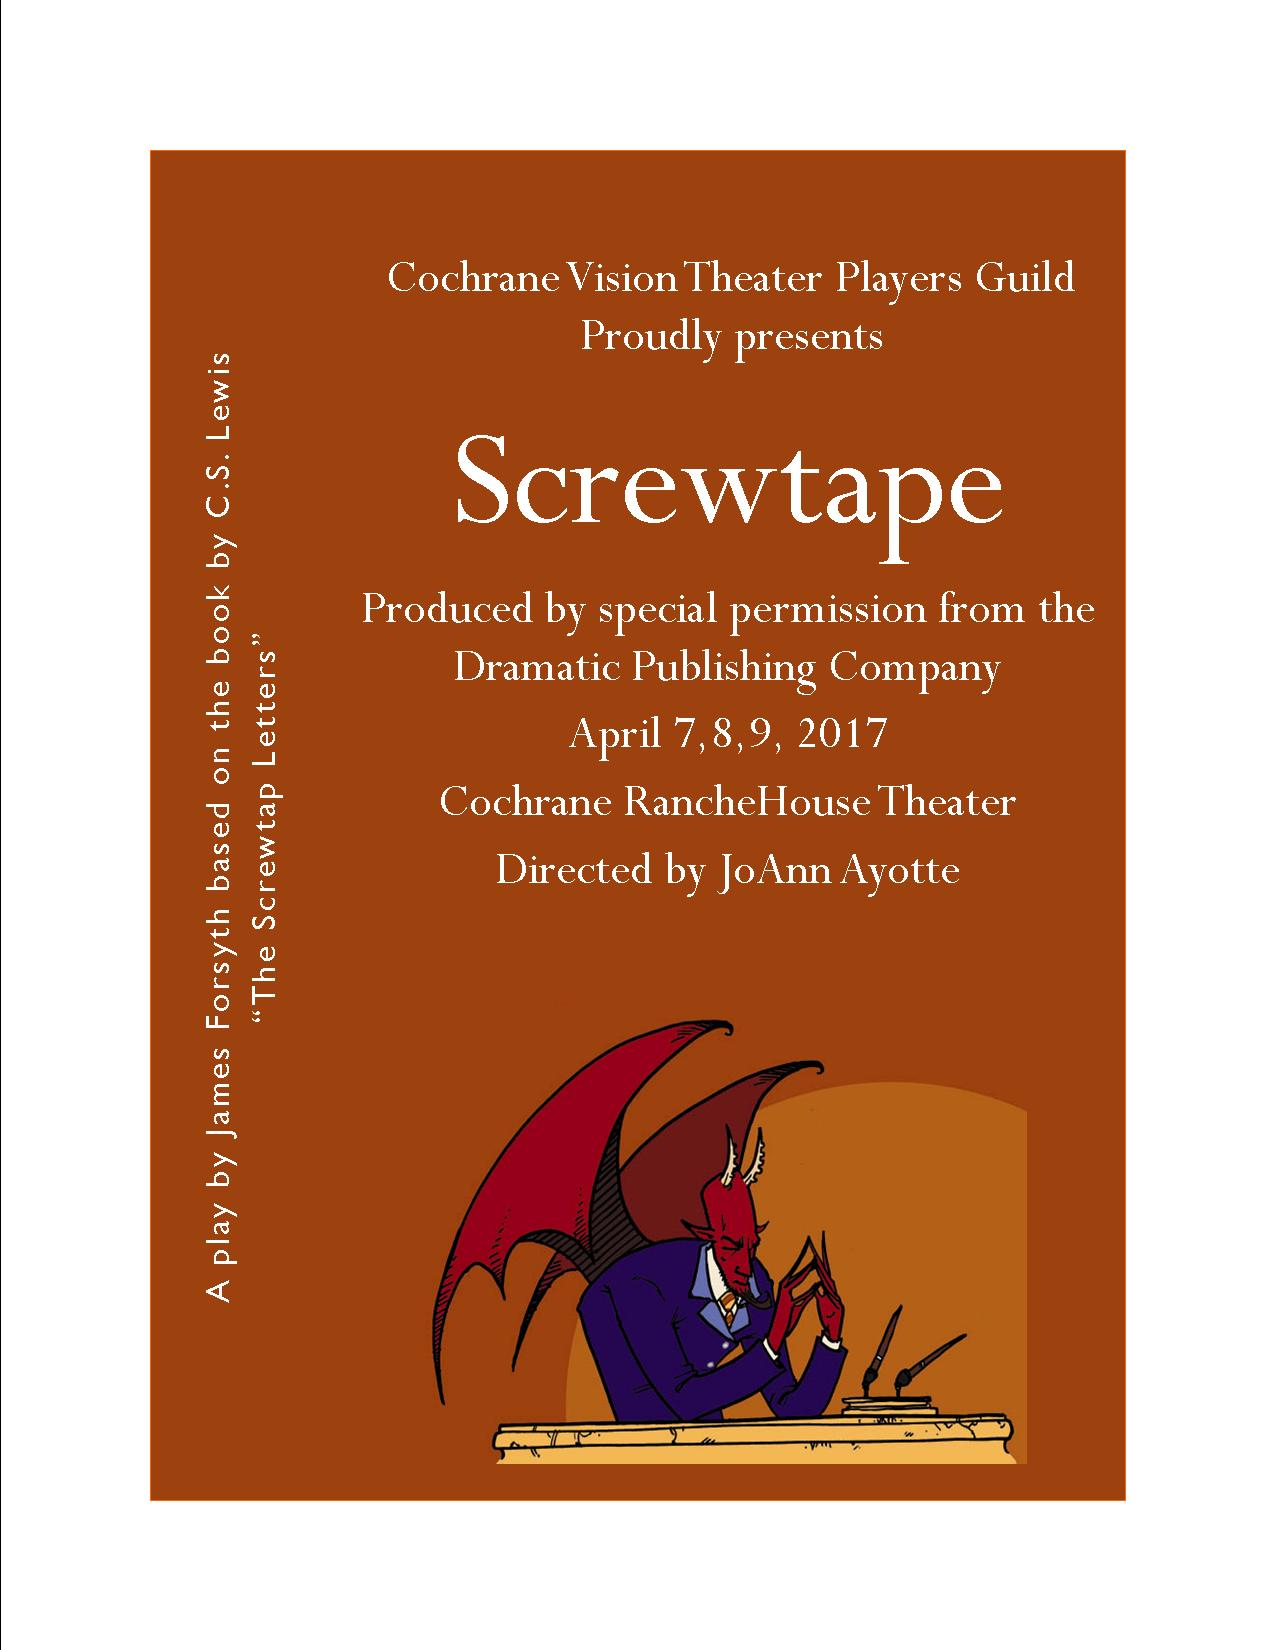 Screwtape play poster